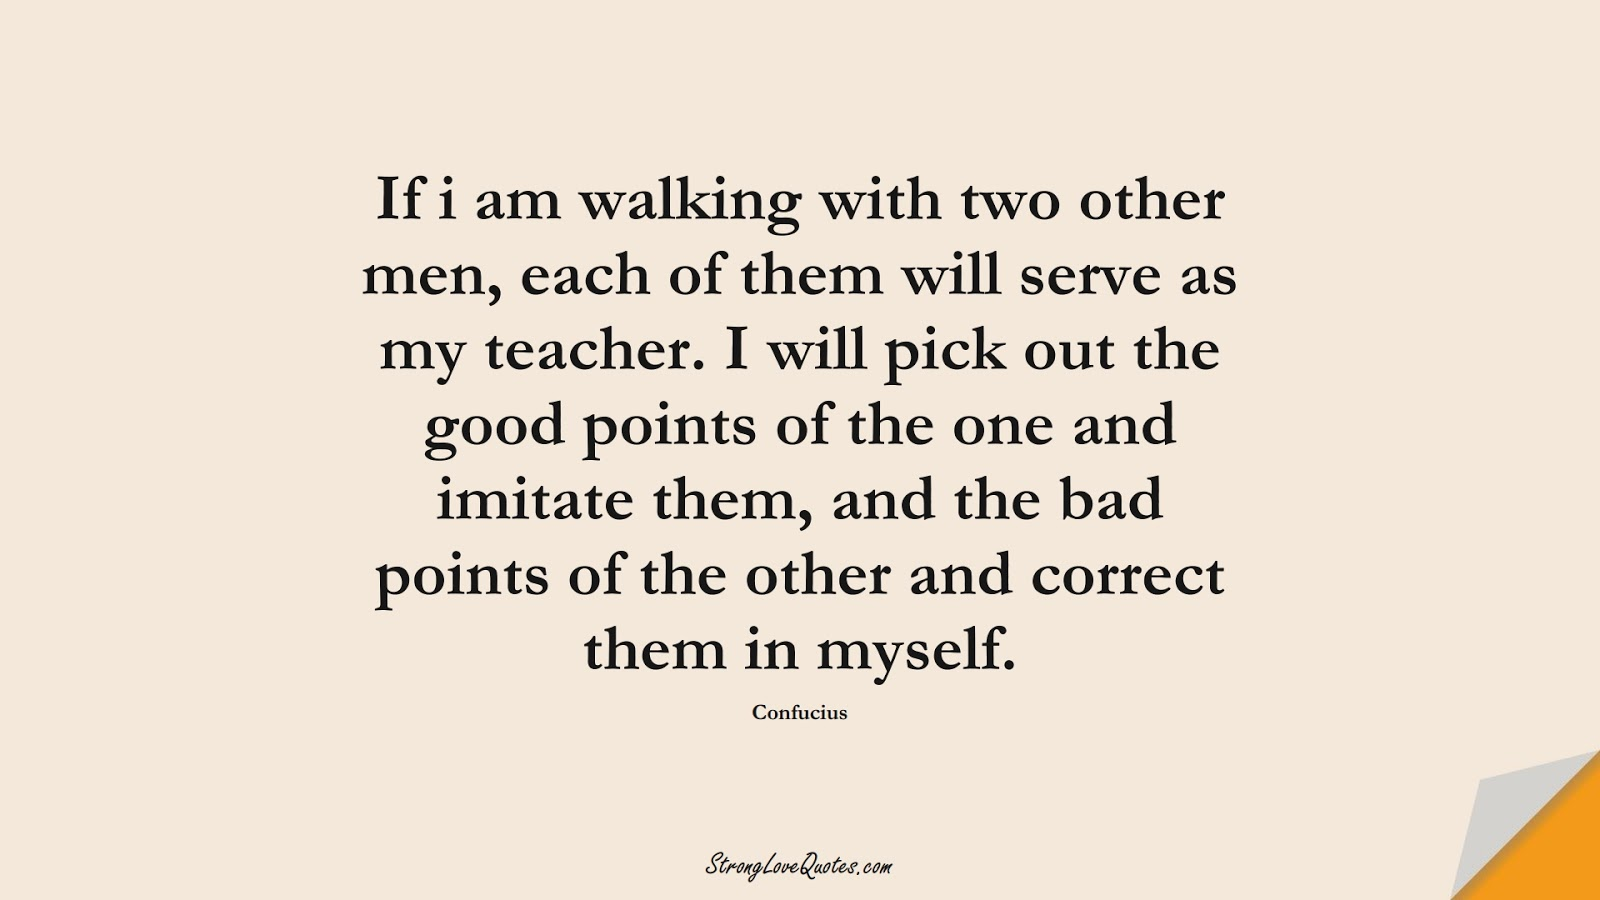 If i am walking with two other men, each of them will serve as my teacher. I will pick out the good points of the one and imitate them, and the bad points of the other and correct them in myself. (Confucius);  #EducationQuotes